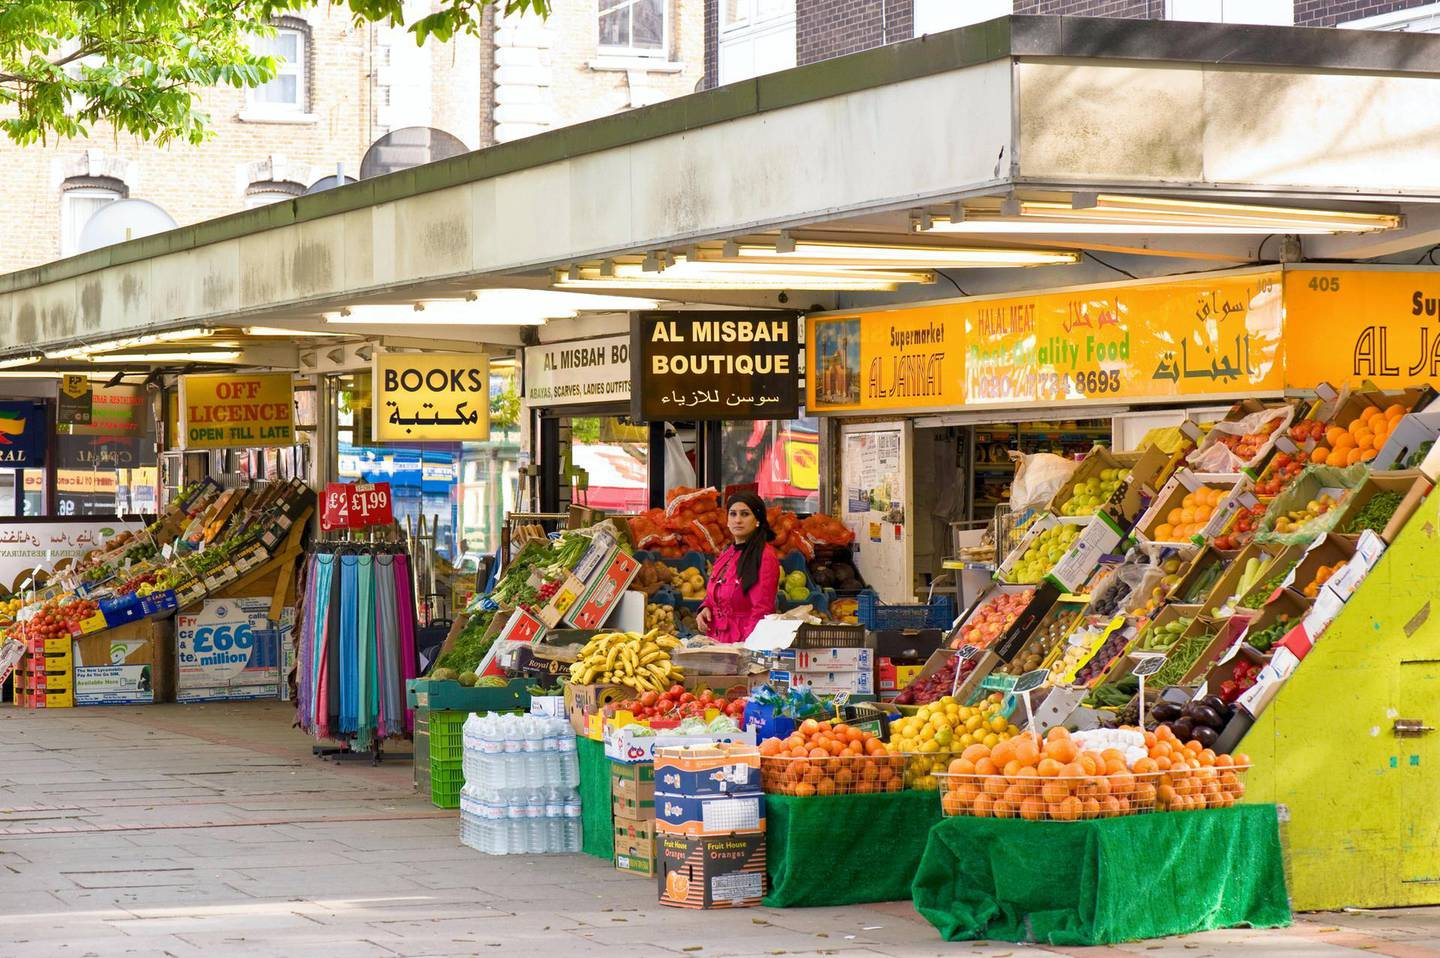 BAKRH2 Grocery store selling ethnic produce Edgware Road W2 London United Kingdom. Image shot 2009. Exact date unknown.